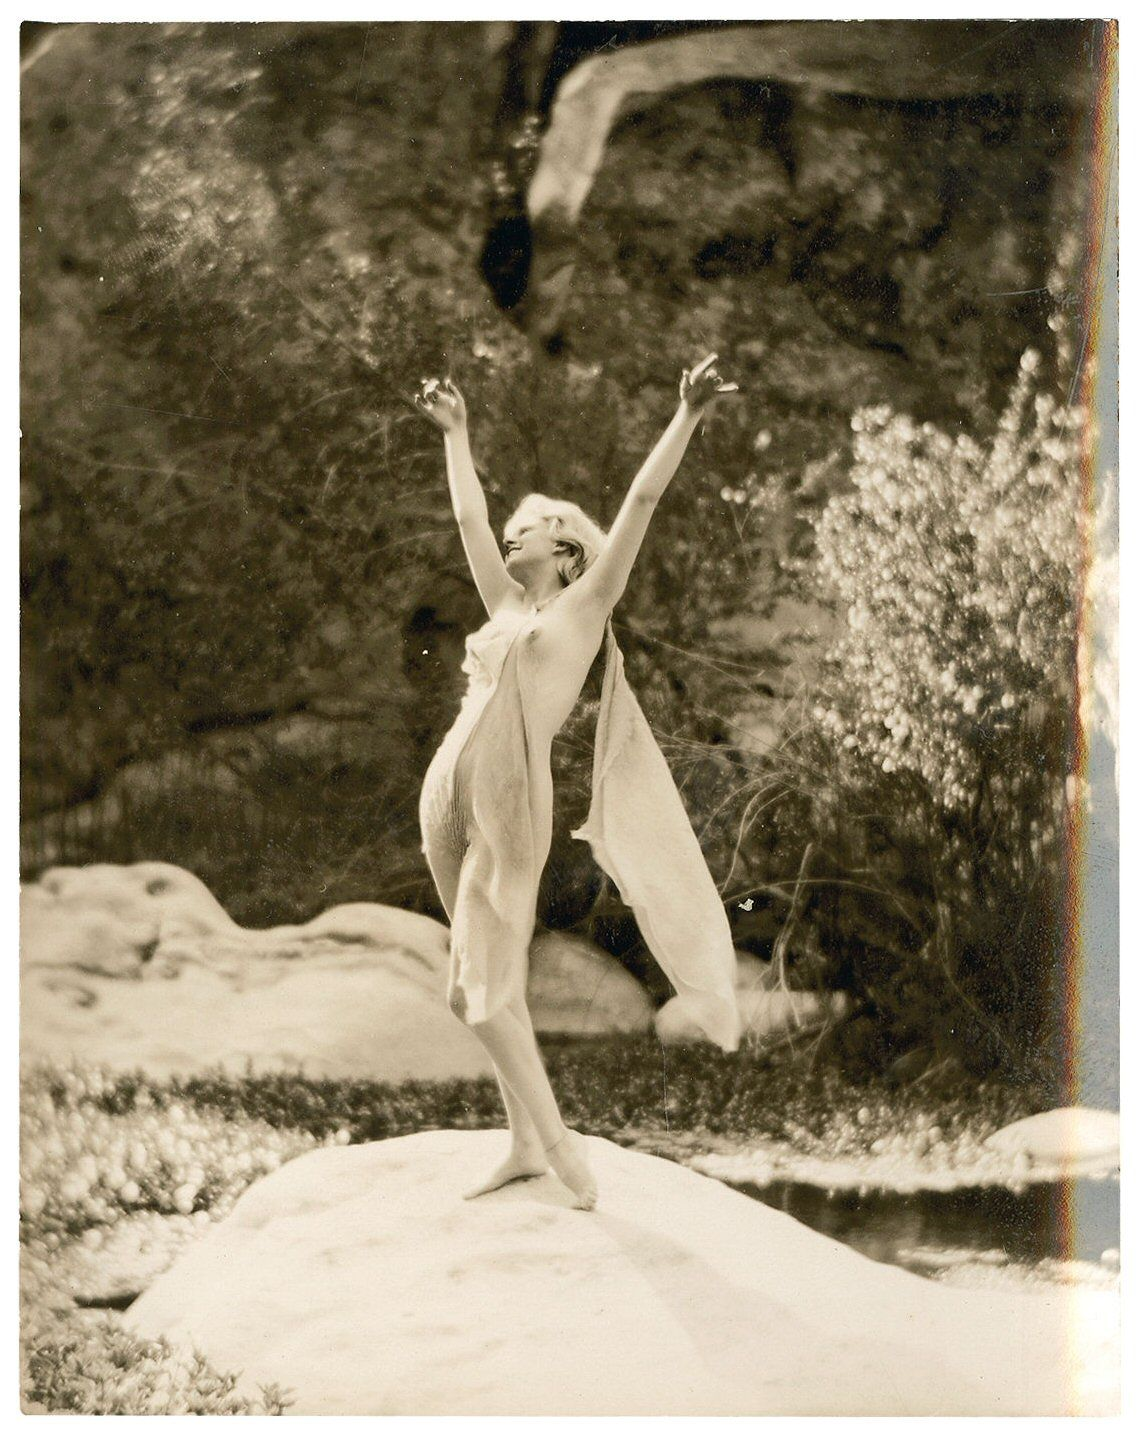 Jean harlow nude the intelligible